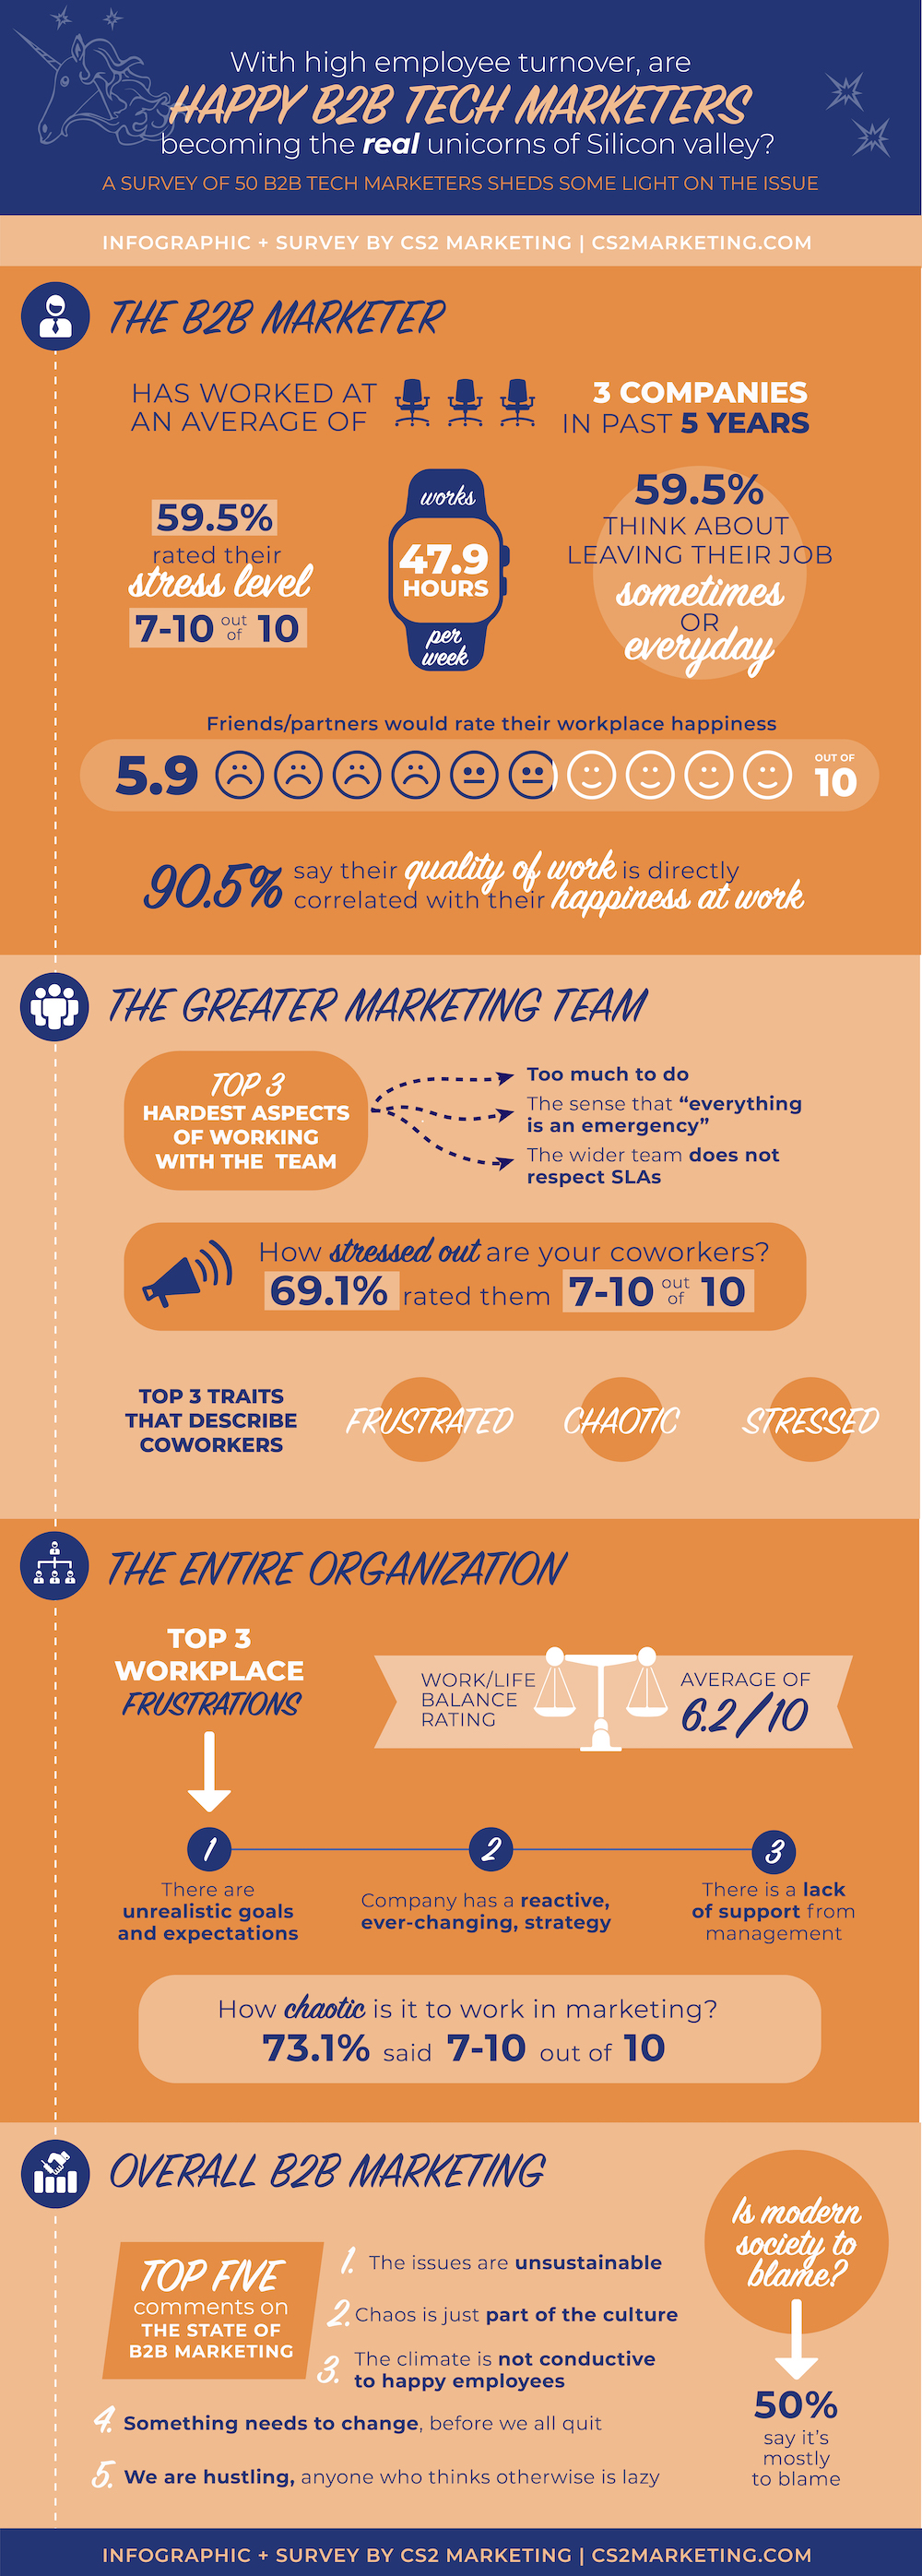 workplace-happiness-infographic.jpg